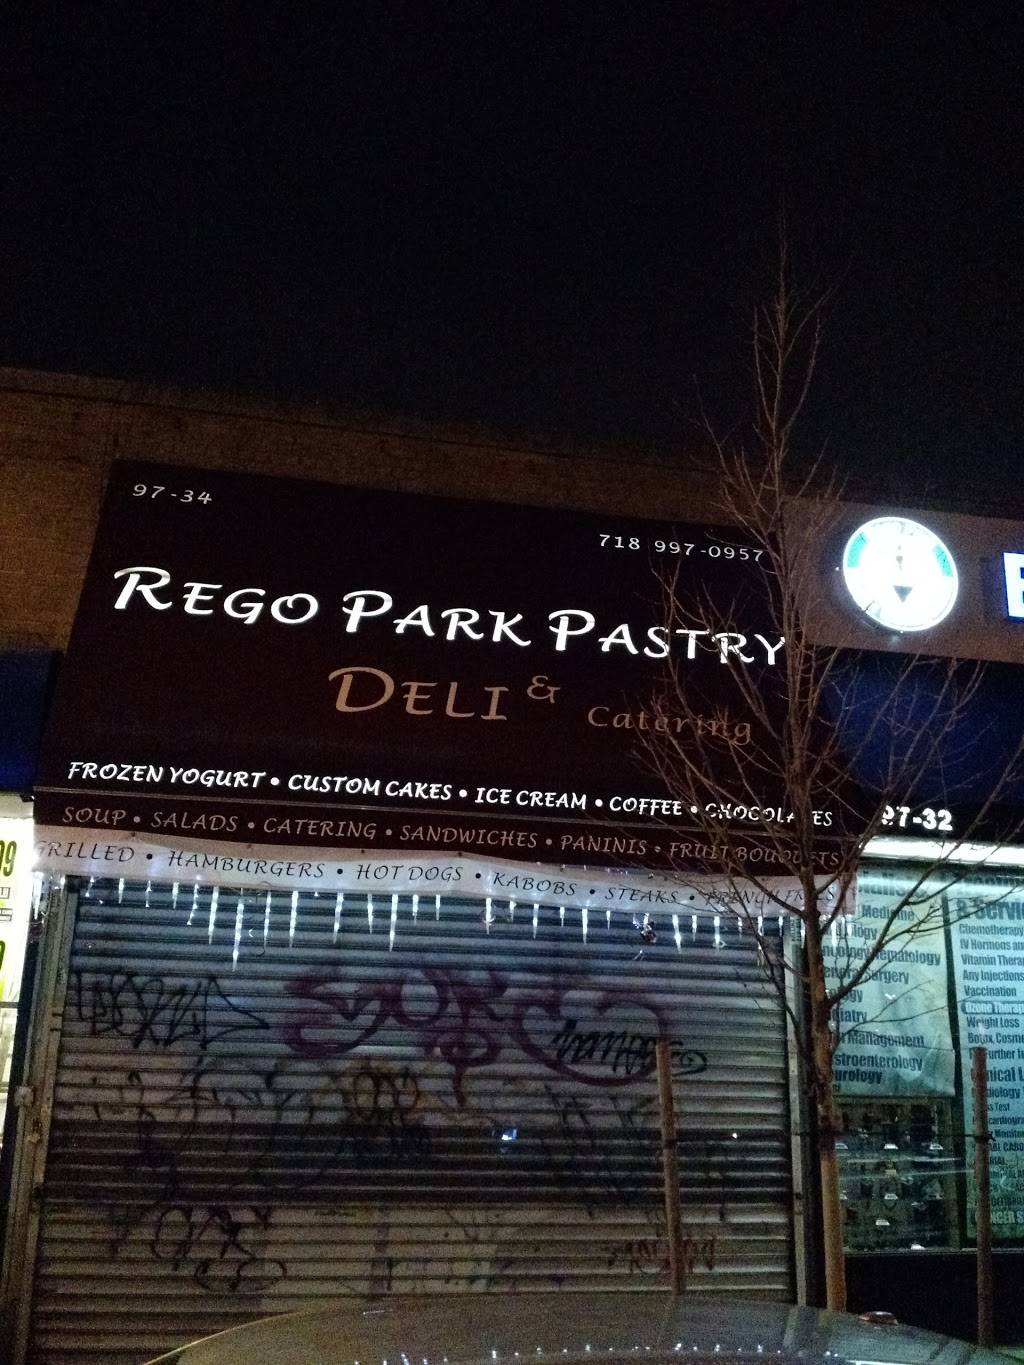 Rego Park Deli and Pastry | bakery | 97-34 63rd Rd, Rego Park, NY 11374, USA | 7189970957 OR +1 718-997-0957